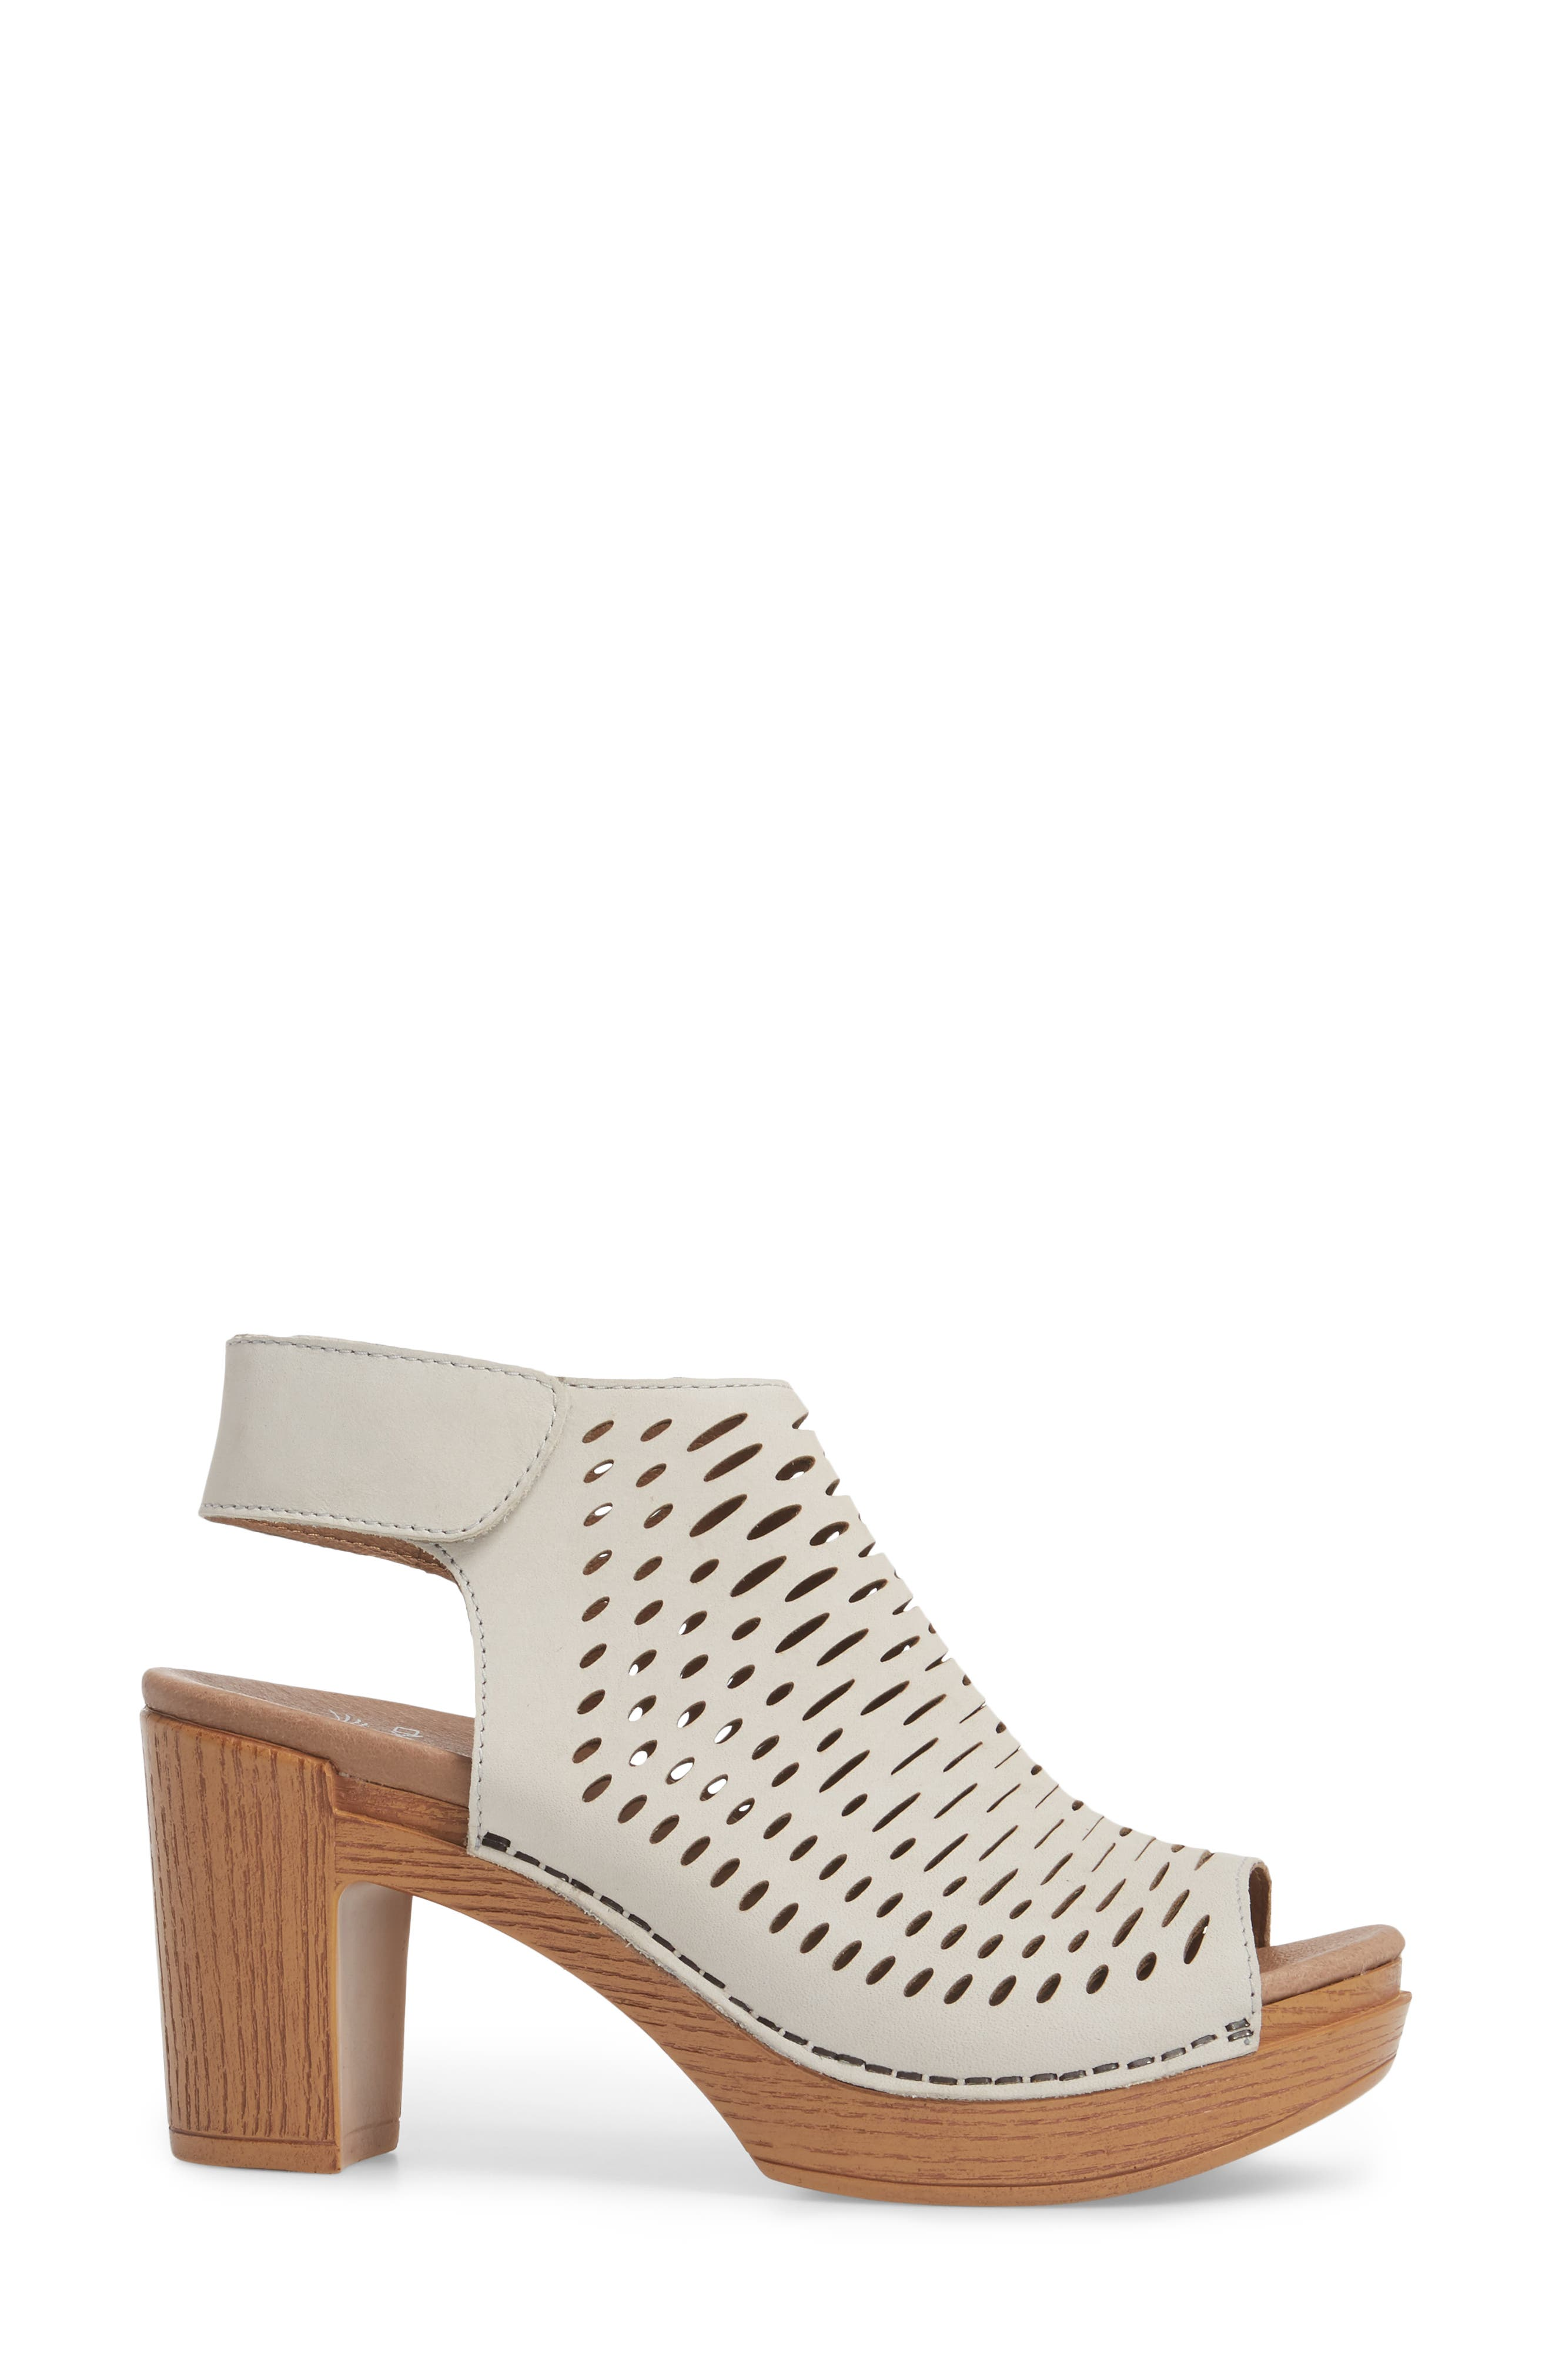 Danae Block Heel Sandal,                             Alternate thumbnail 3, color,                             Oyster Milled Nubuck Leather